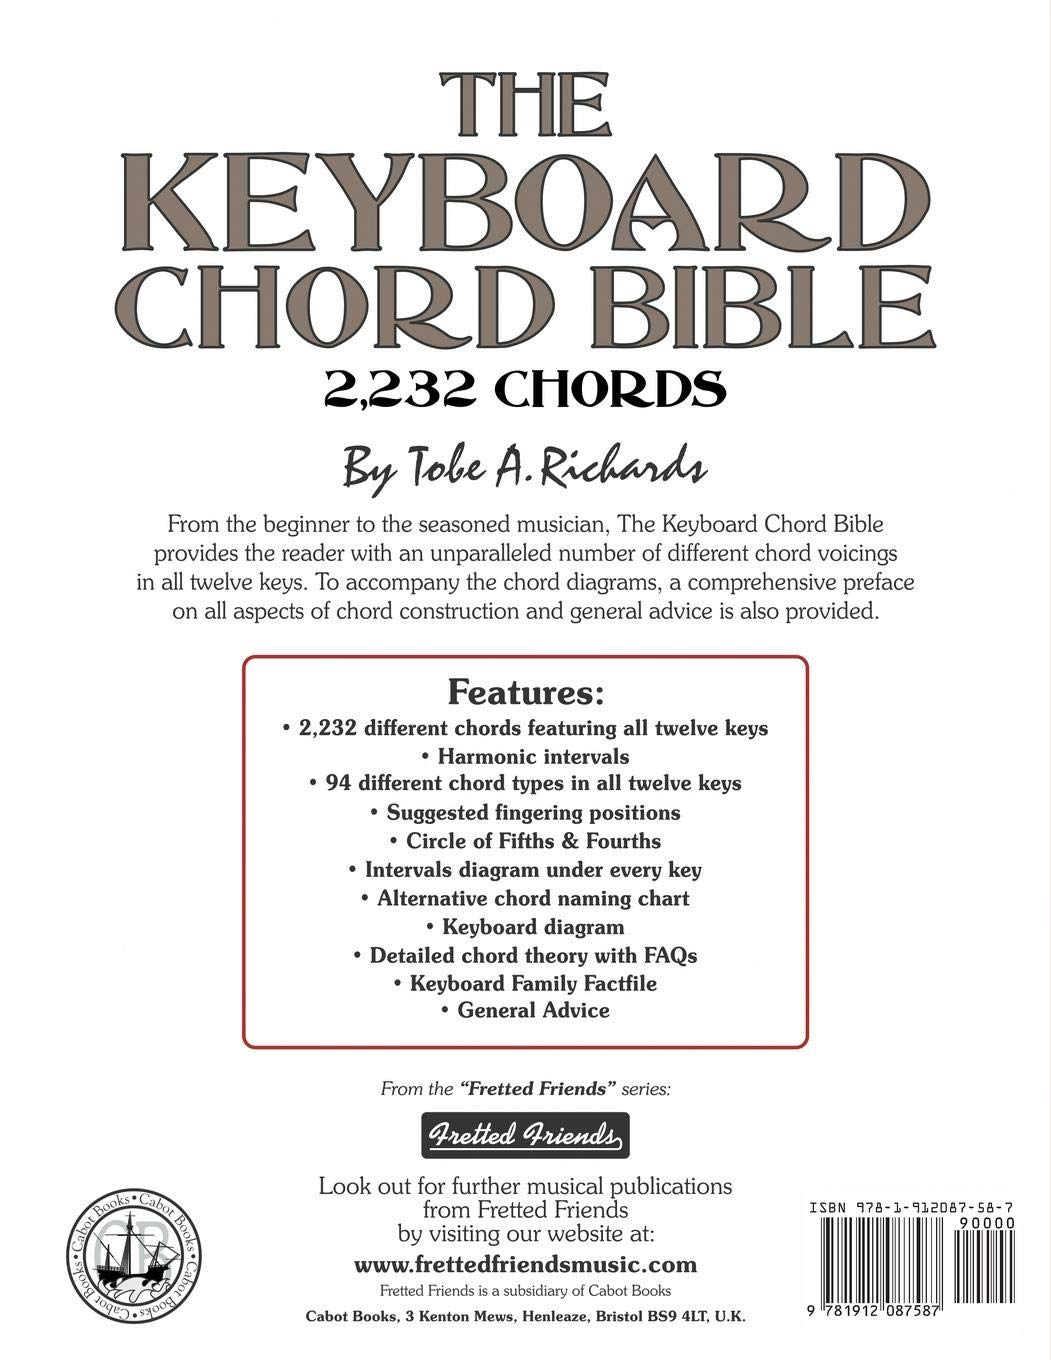 The Keyboard Chord Bible: 2, 232 Chords (Fretted Friends